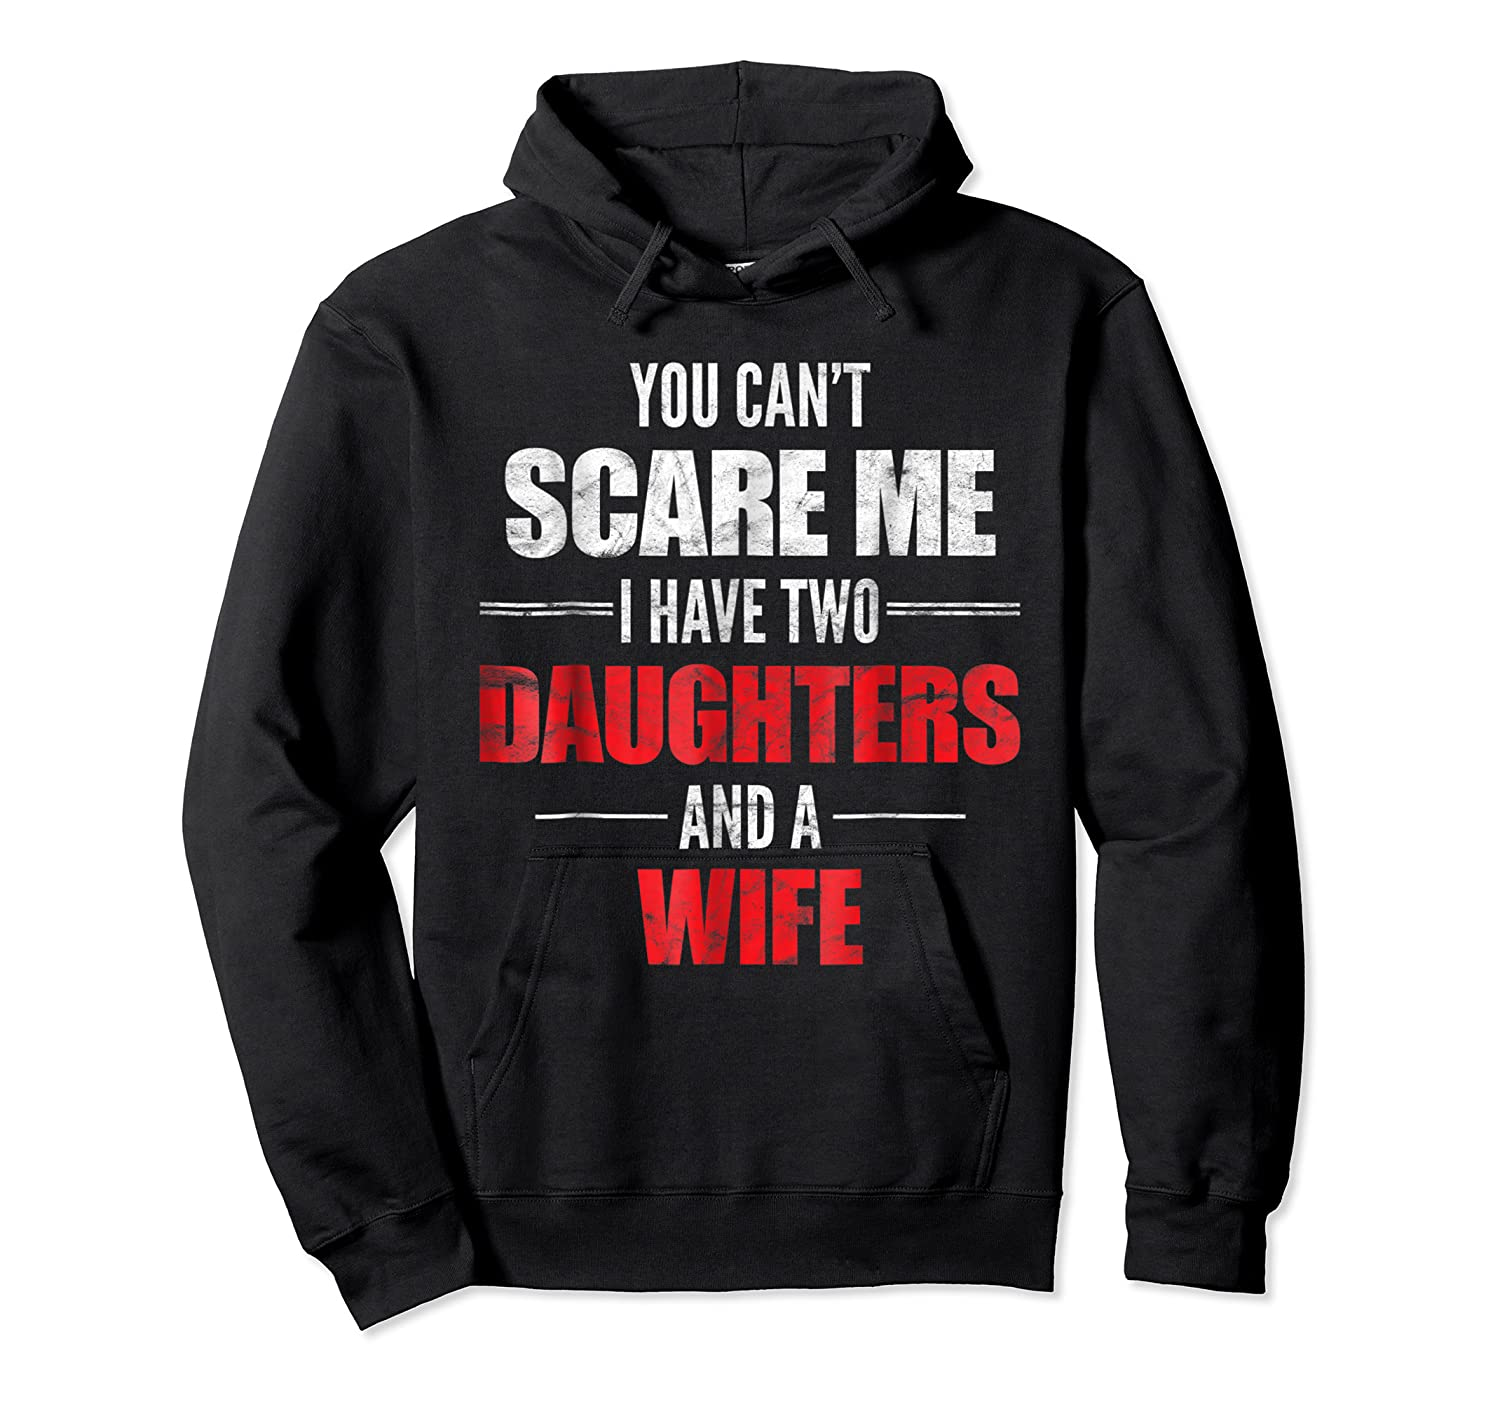 You Can't Scare Me I Have Two Daughters And A Wife Shirts Unisex Pullover Hoodie